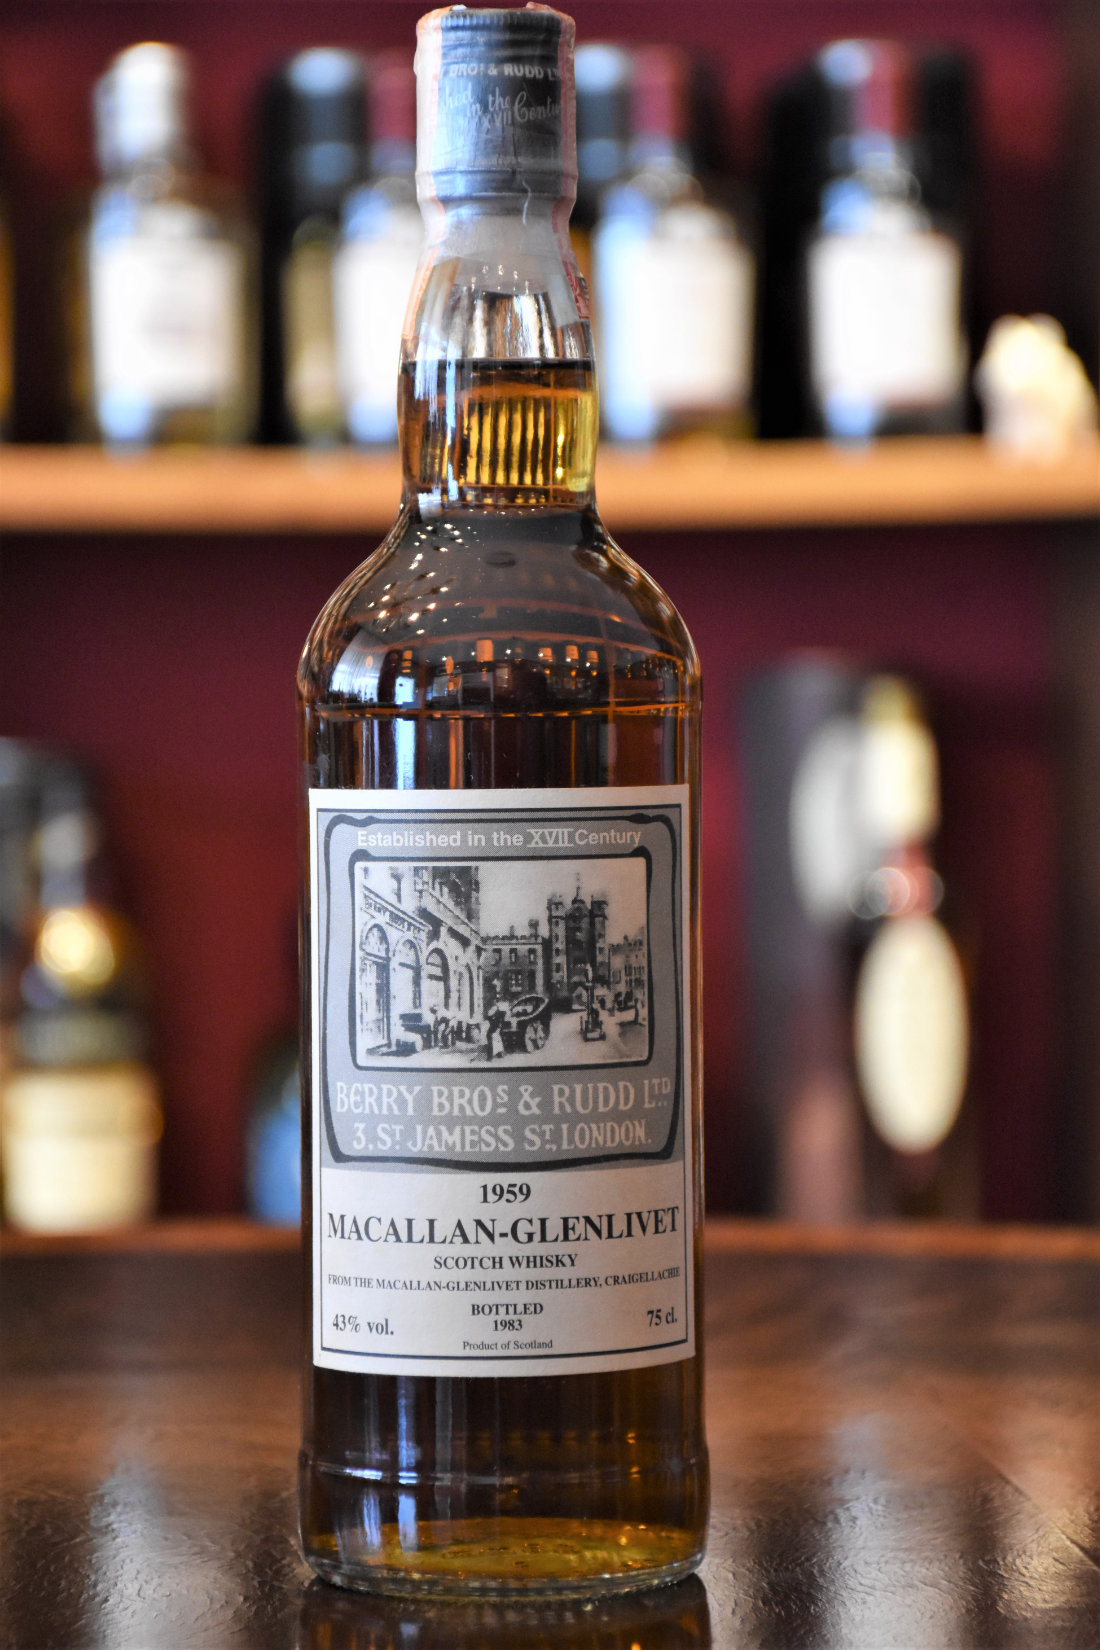 Macallan 1959 Old Bond Street Label Absolute Rarität! 43% Alc. Vol., Berry Bros.& Rudd